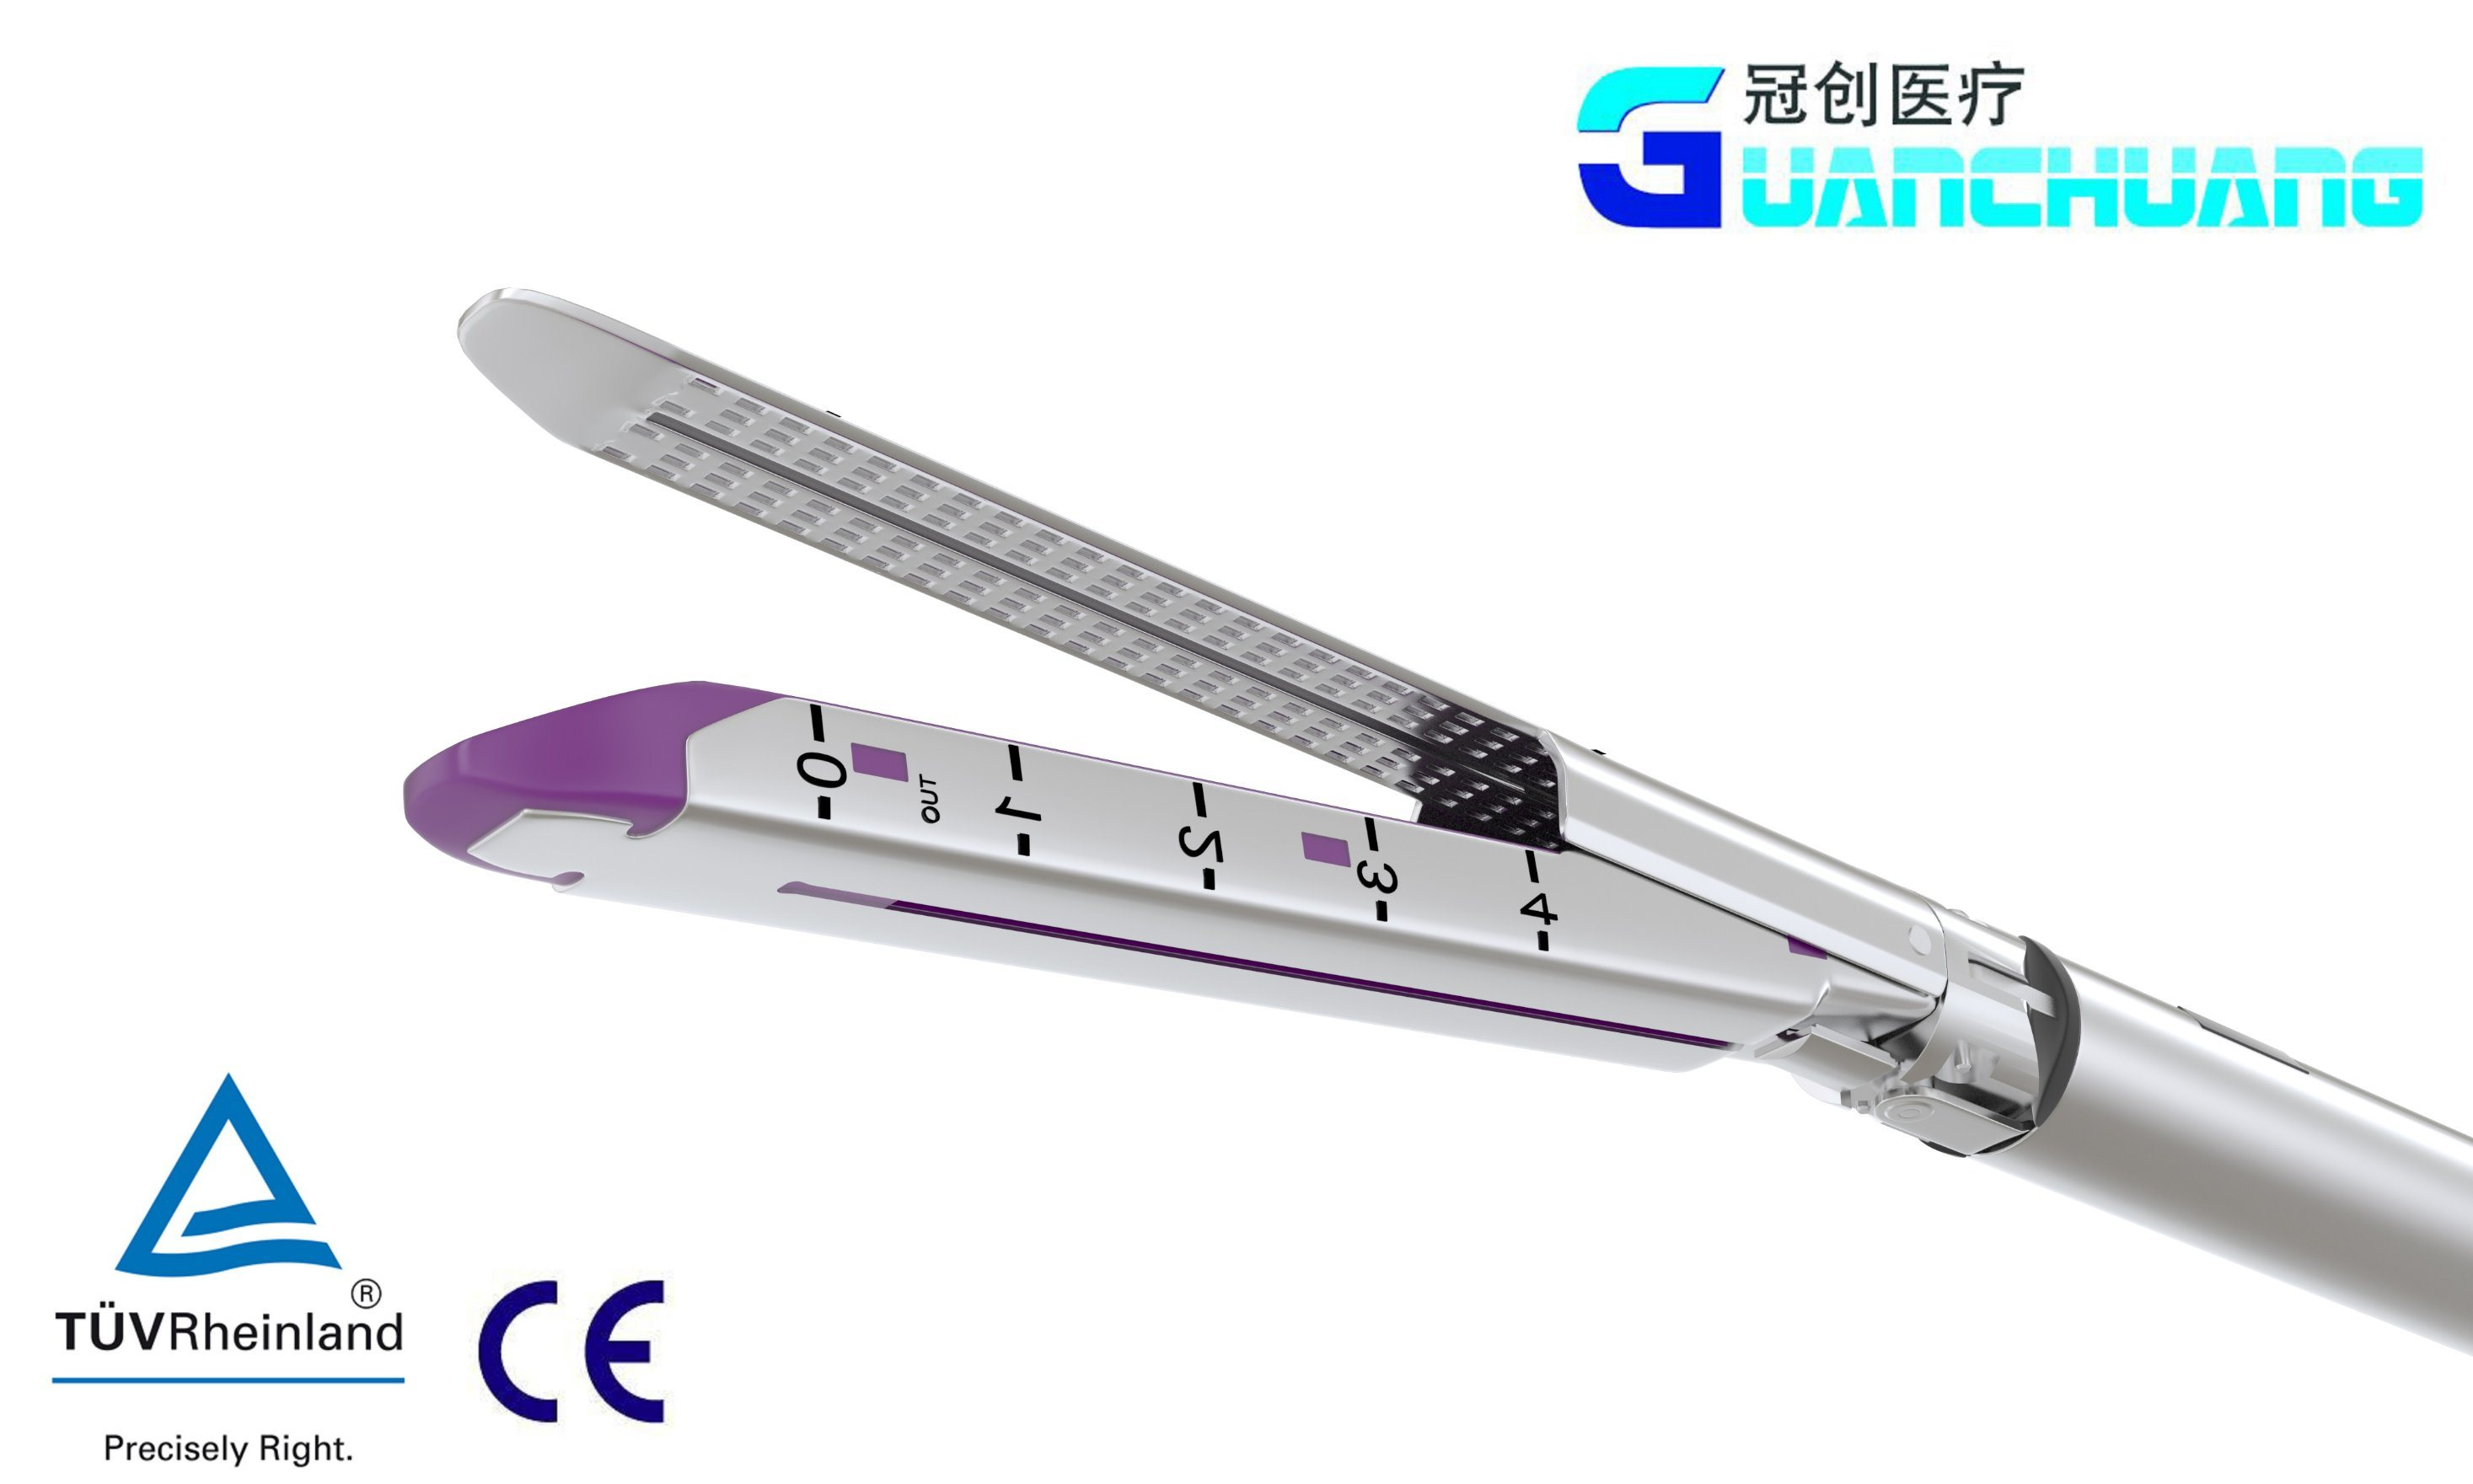 Reload for Disposable Endoscopic Cutter Stapler (purple)